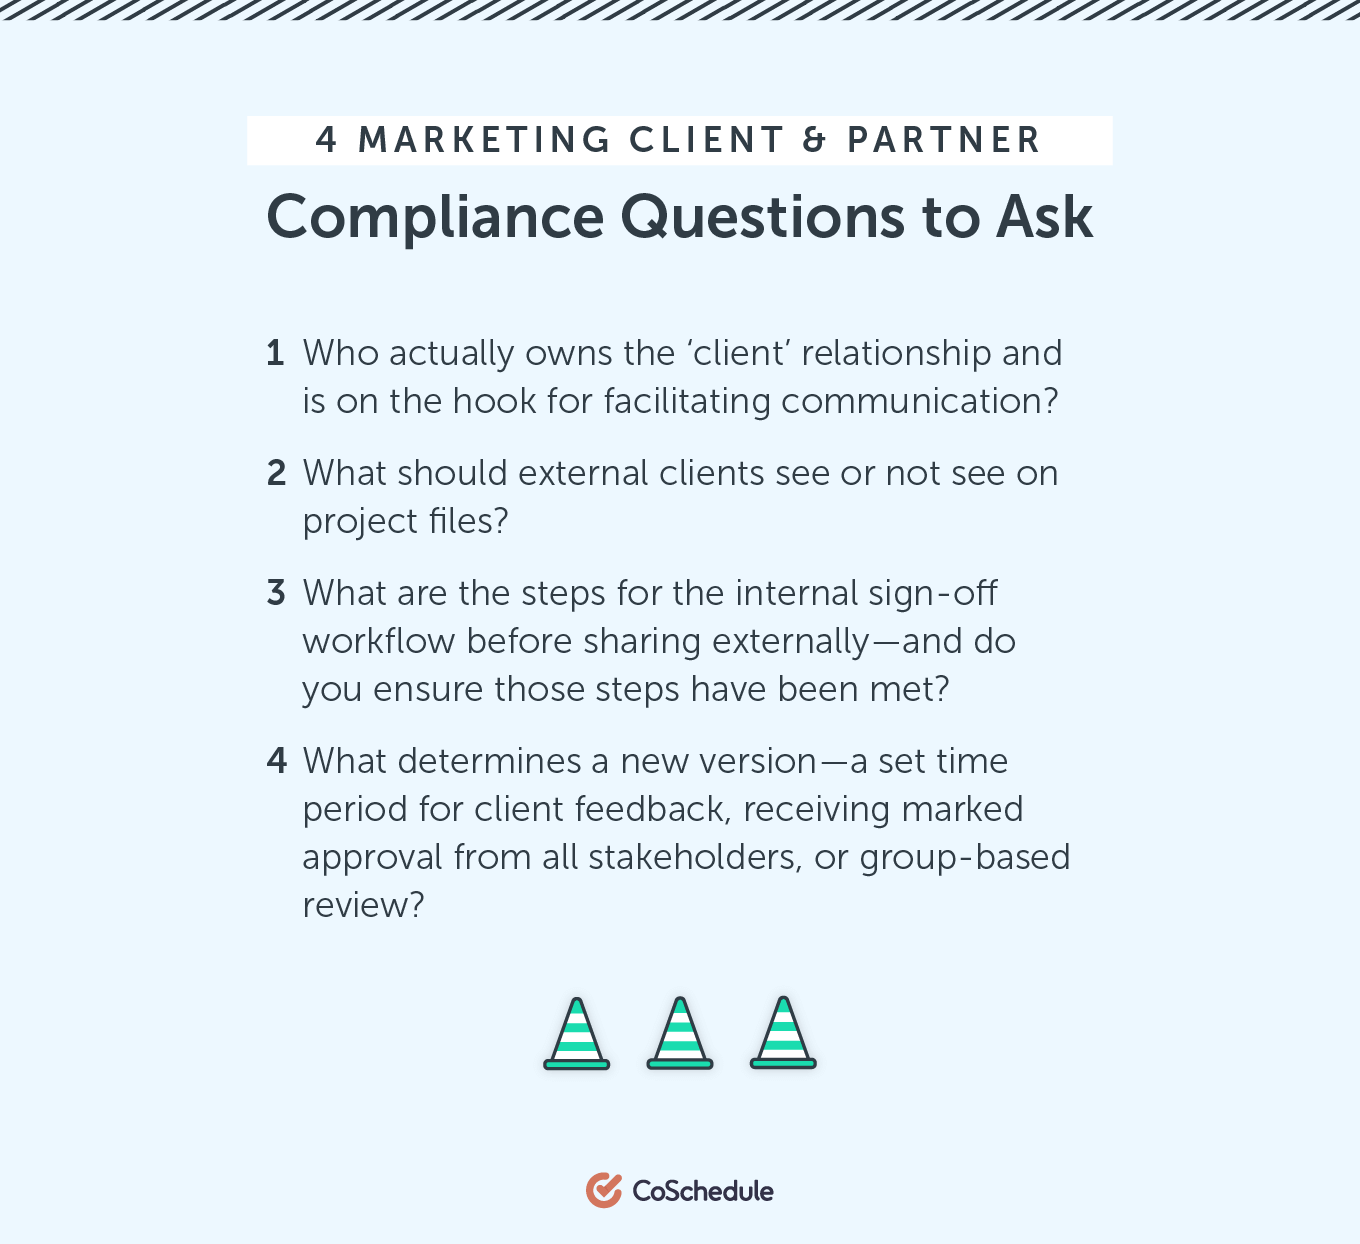 4 Marketing Compliance Questions to Ask